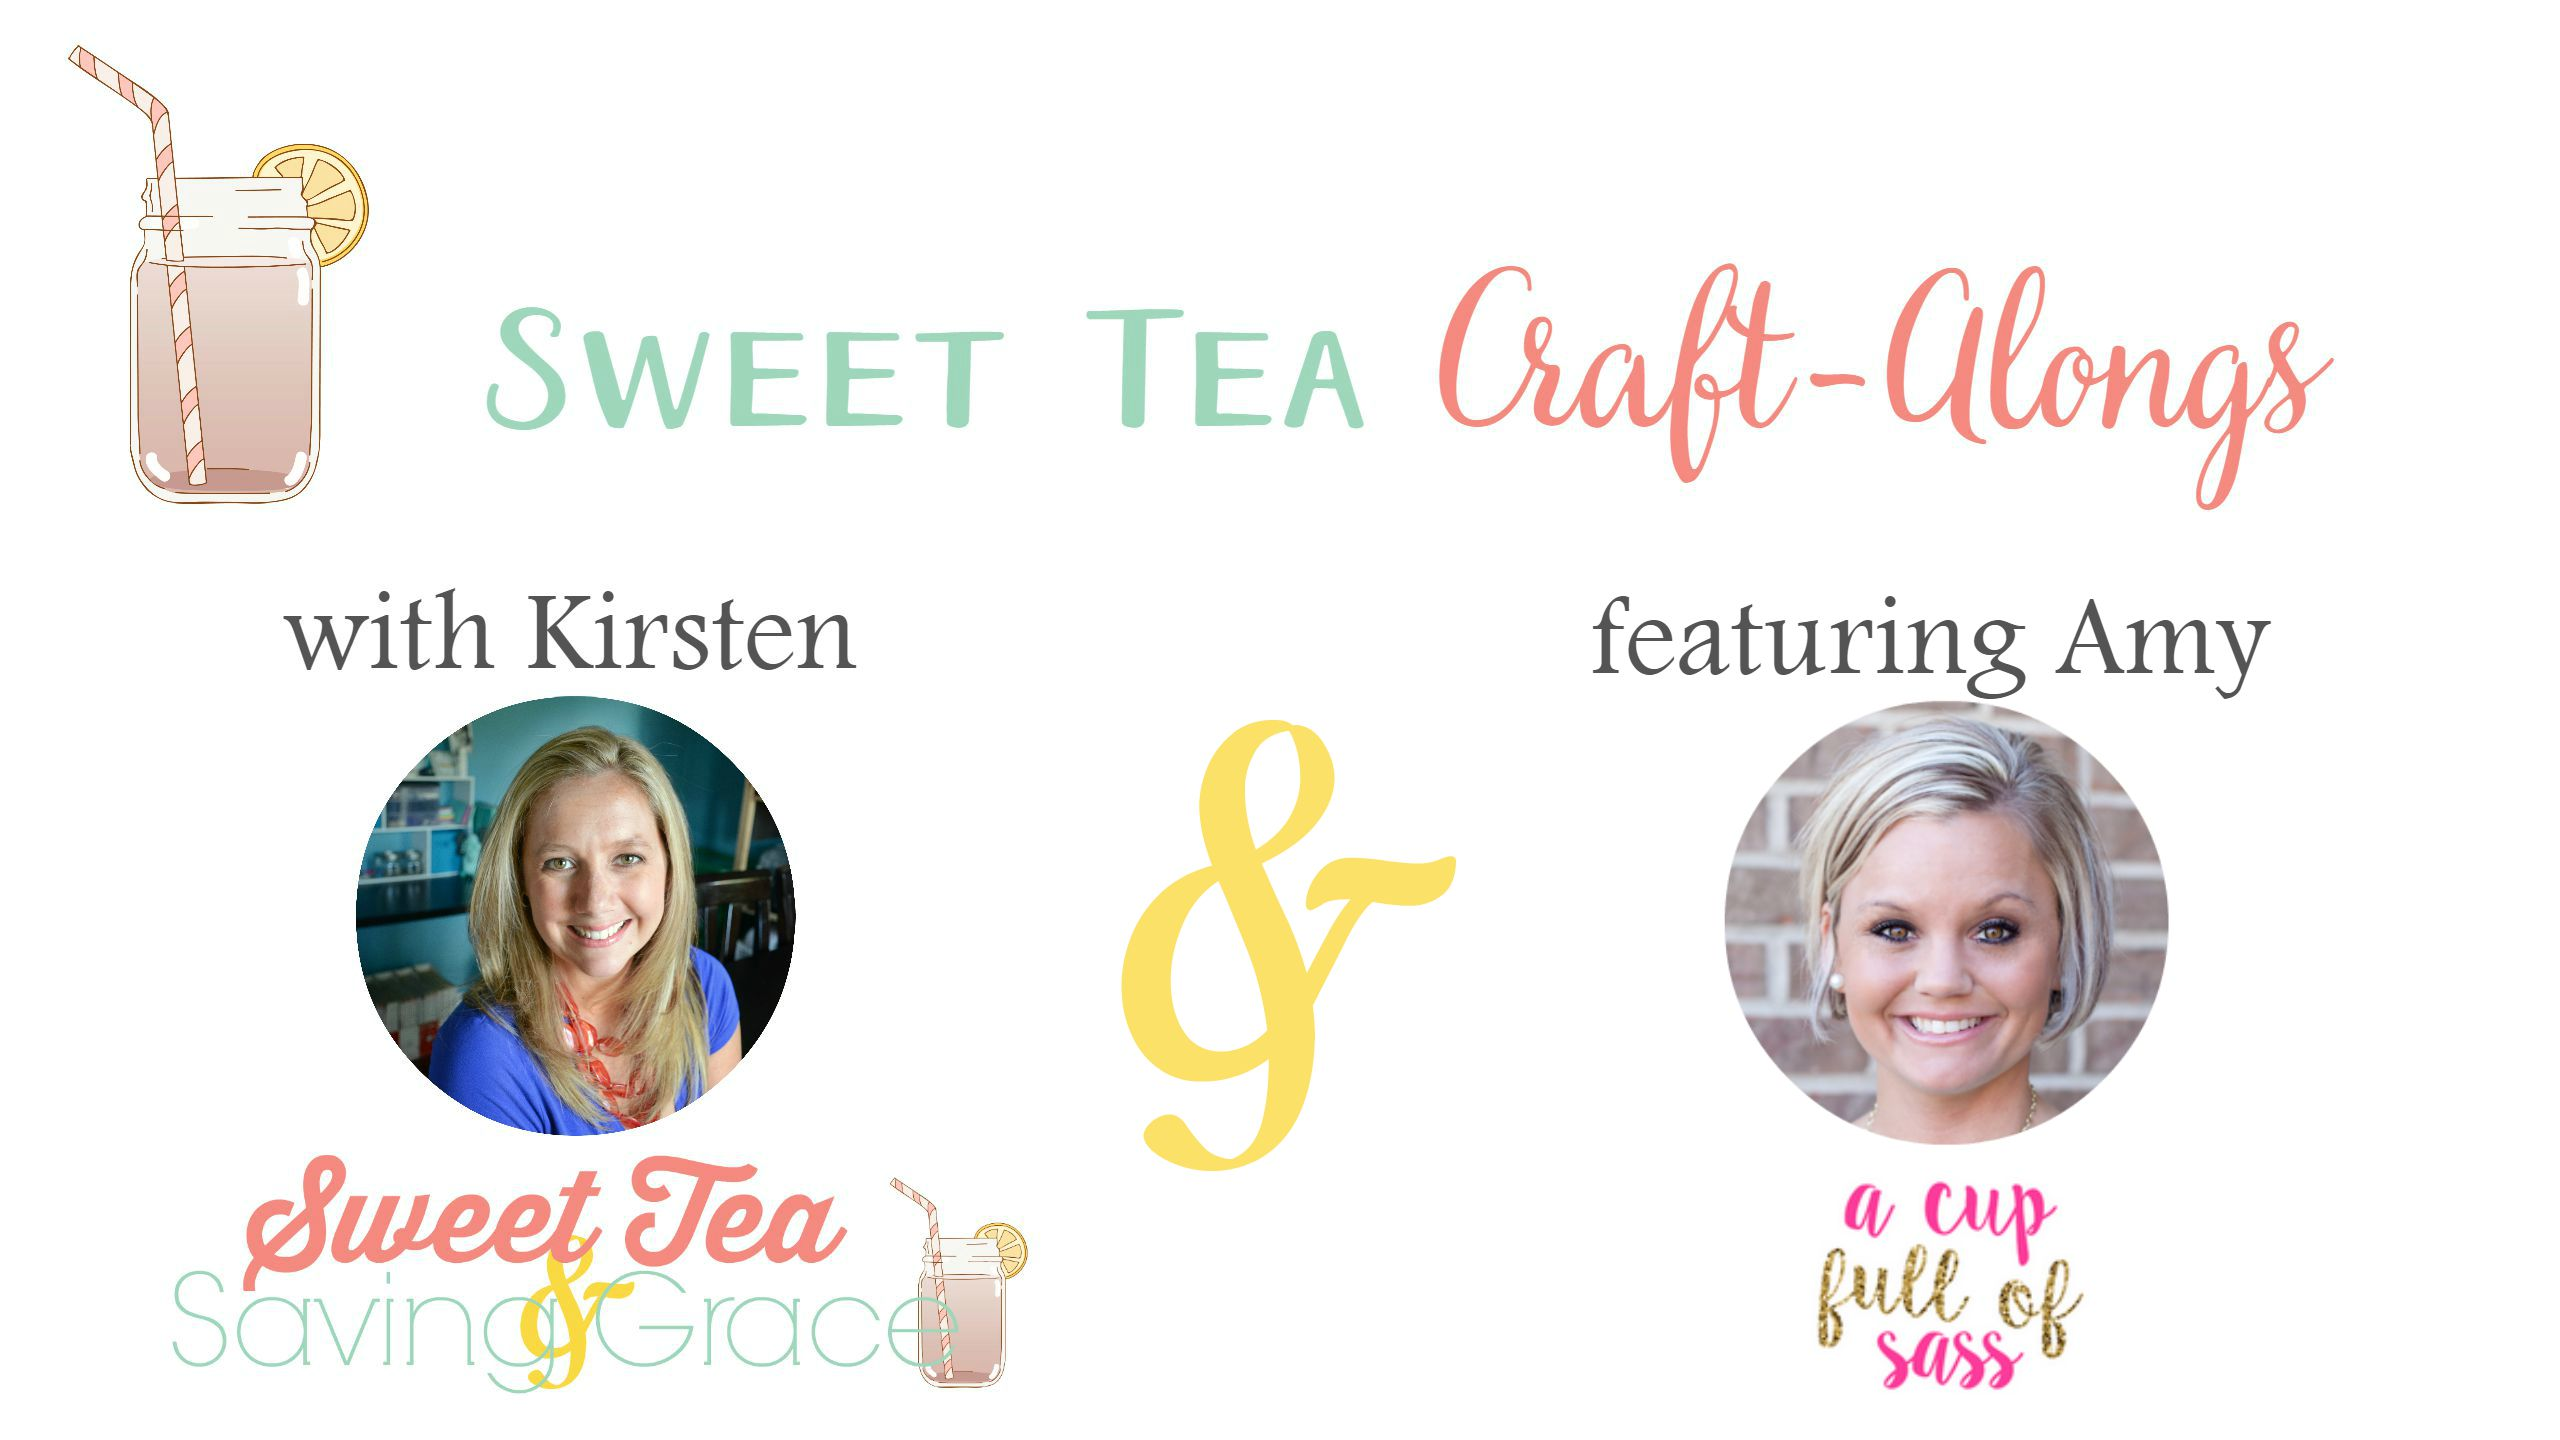 Sweet Tea Craft-along feat. A Cup Full of Sass (YouTube video)